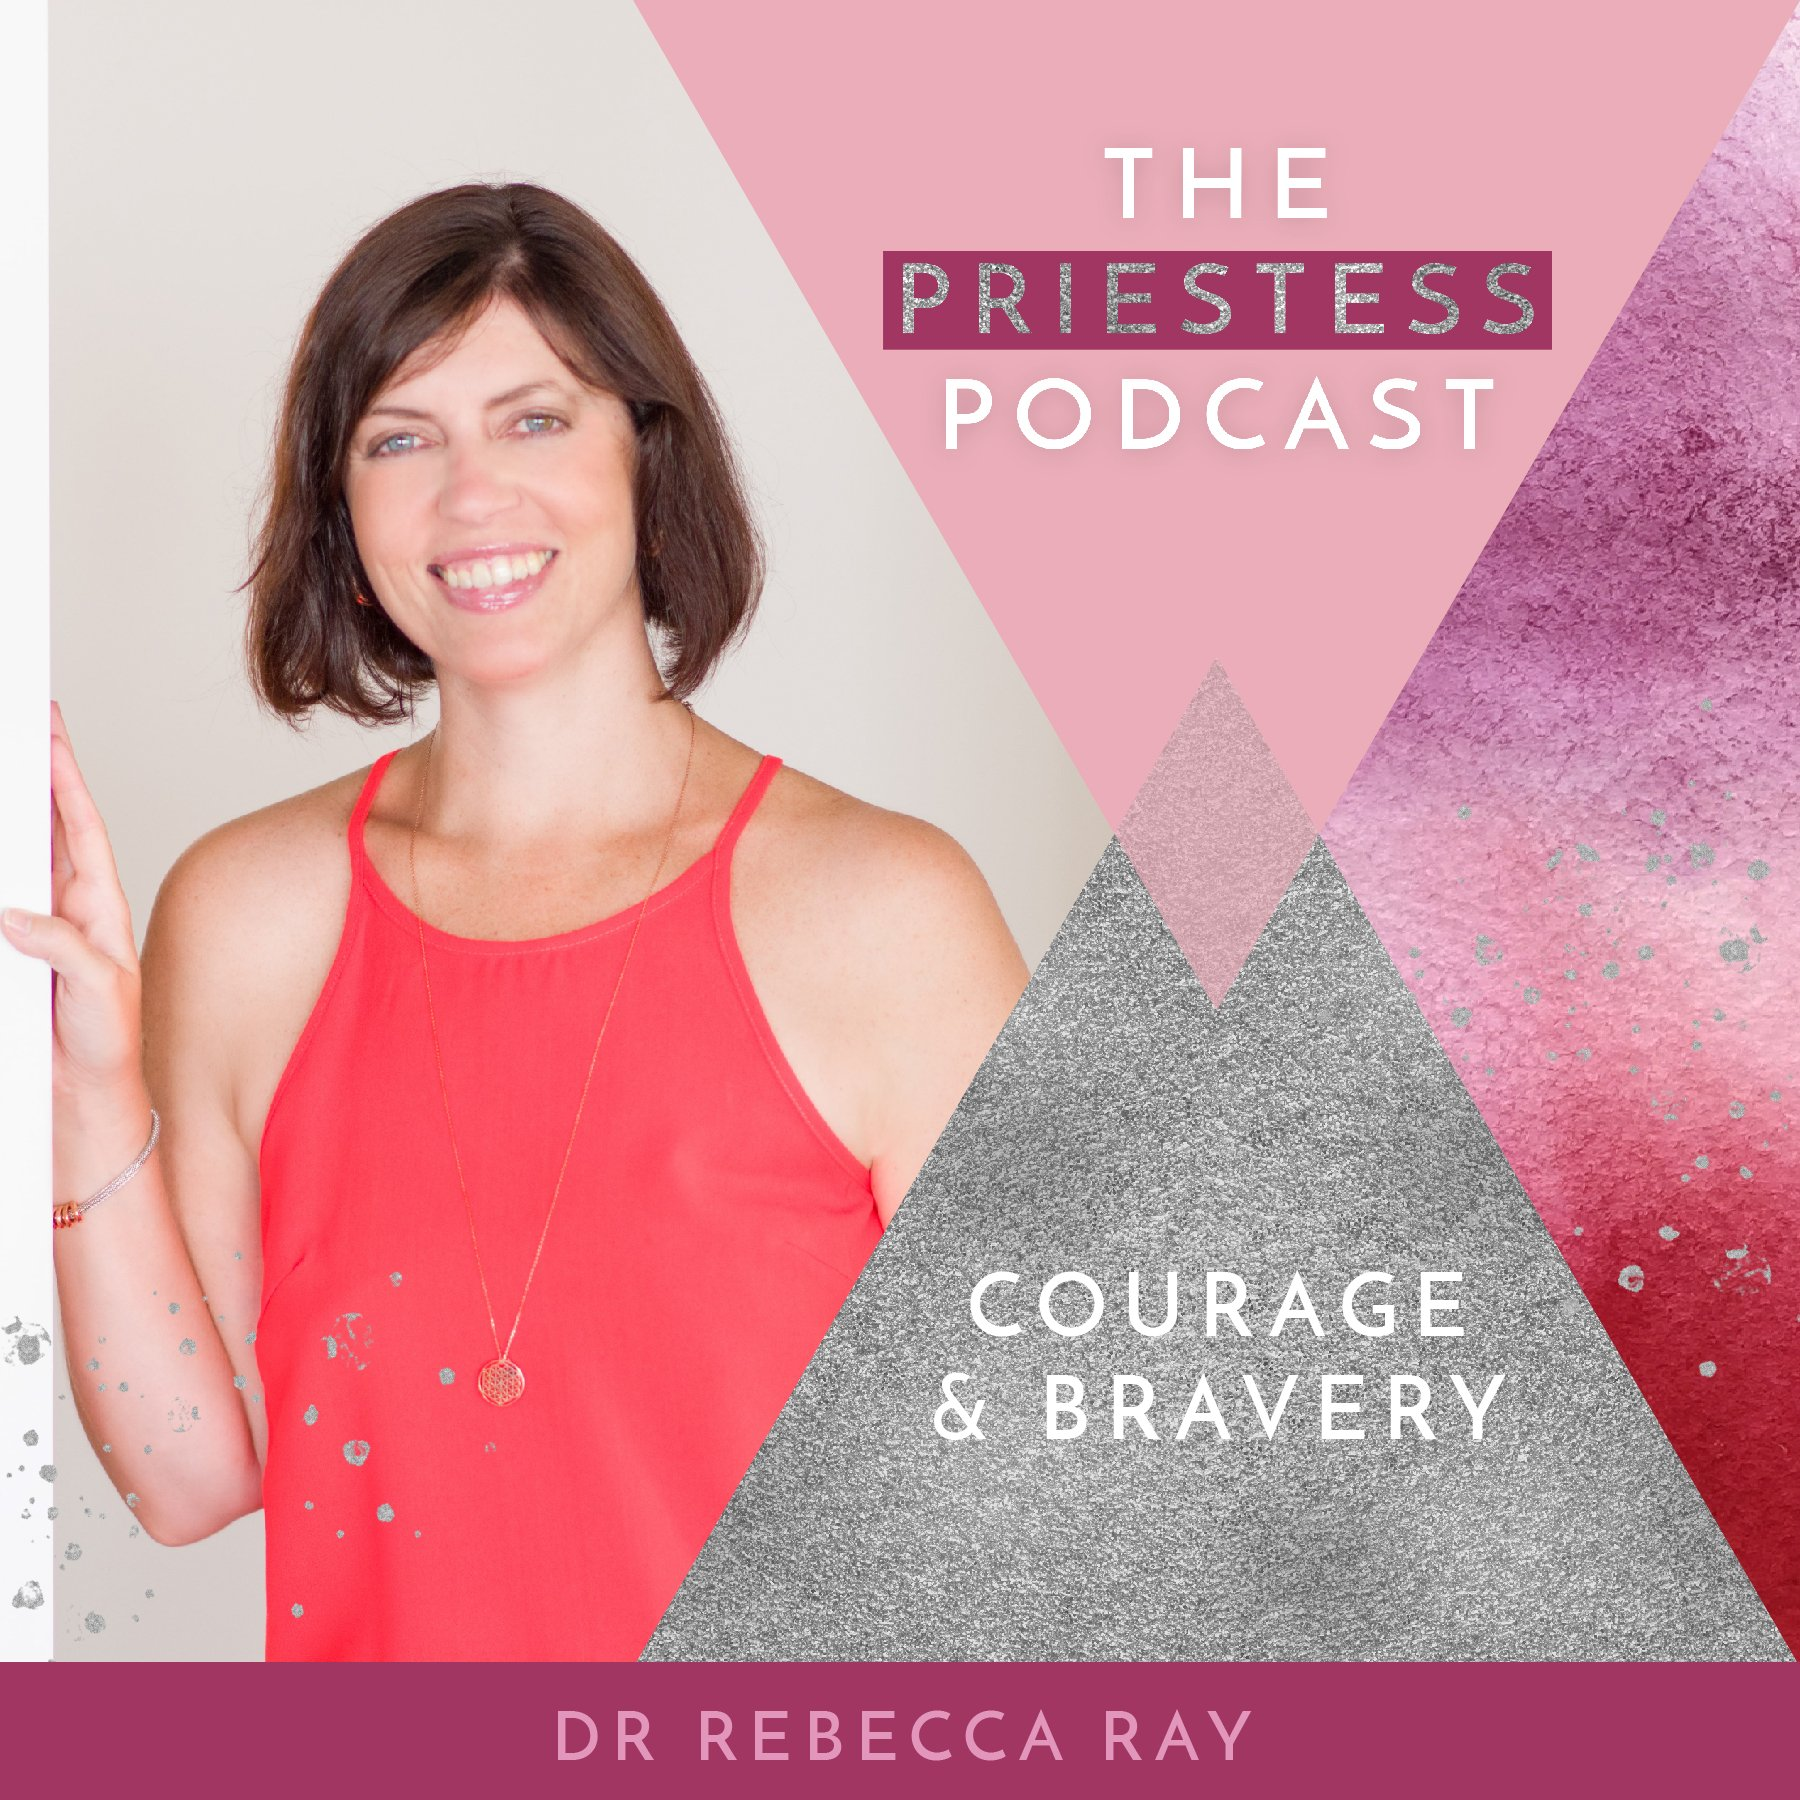 Dr Rebecca Ray on Courage & Bravery